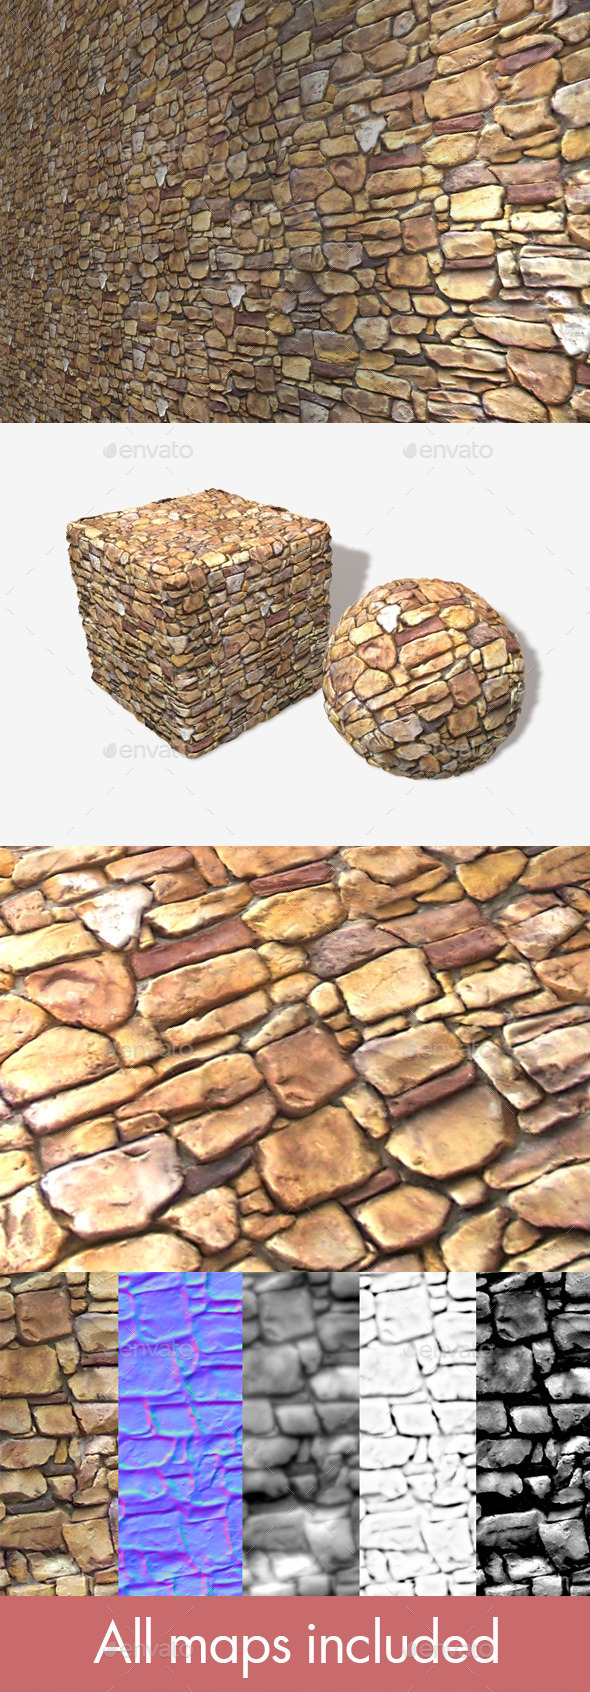 Sandstone Rock Wall Seamless Texture - 3DOcean Item for Sale